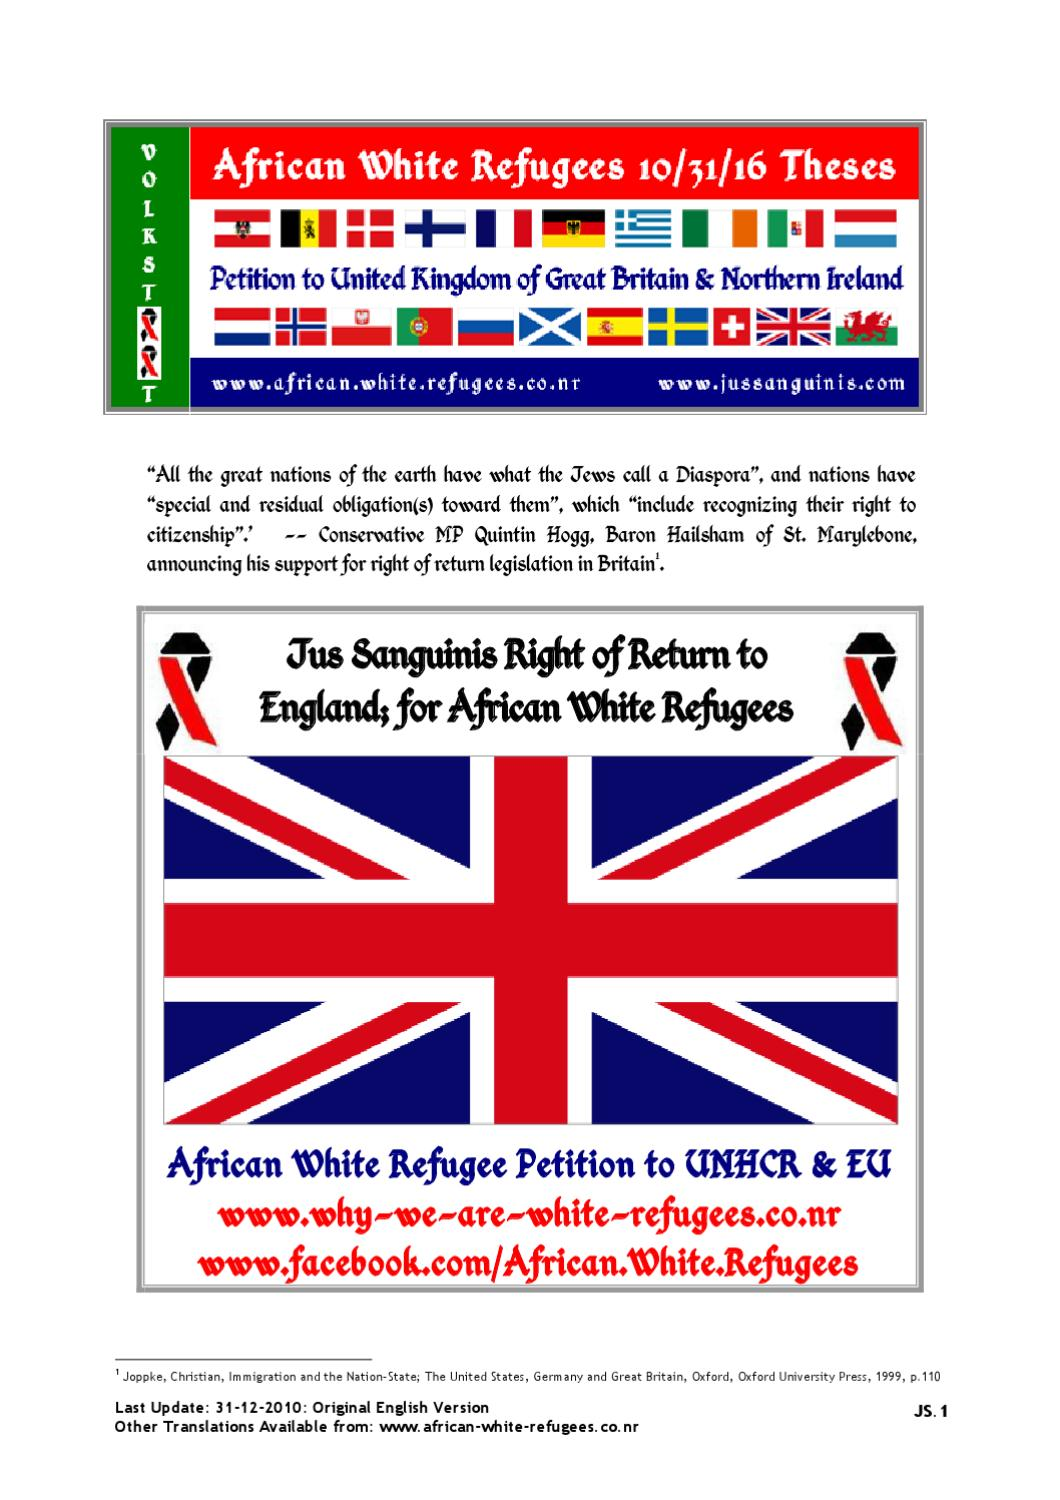 uk african white refugee 10 31 16 theses boer volkstaat; or jusuk african white refugee 10 31 16 theses boer volkstaat; or jus sanguinis eu citizenship by andrea muhrrteyn issuu